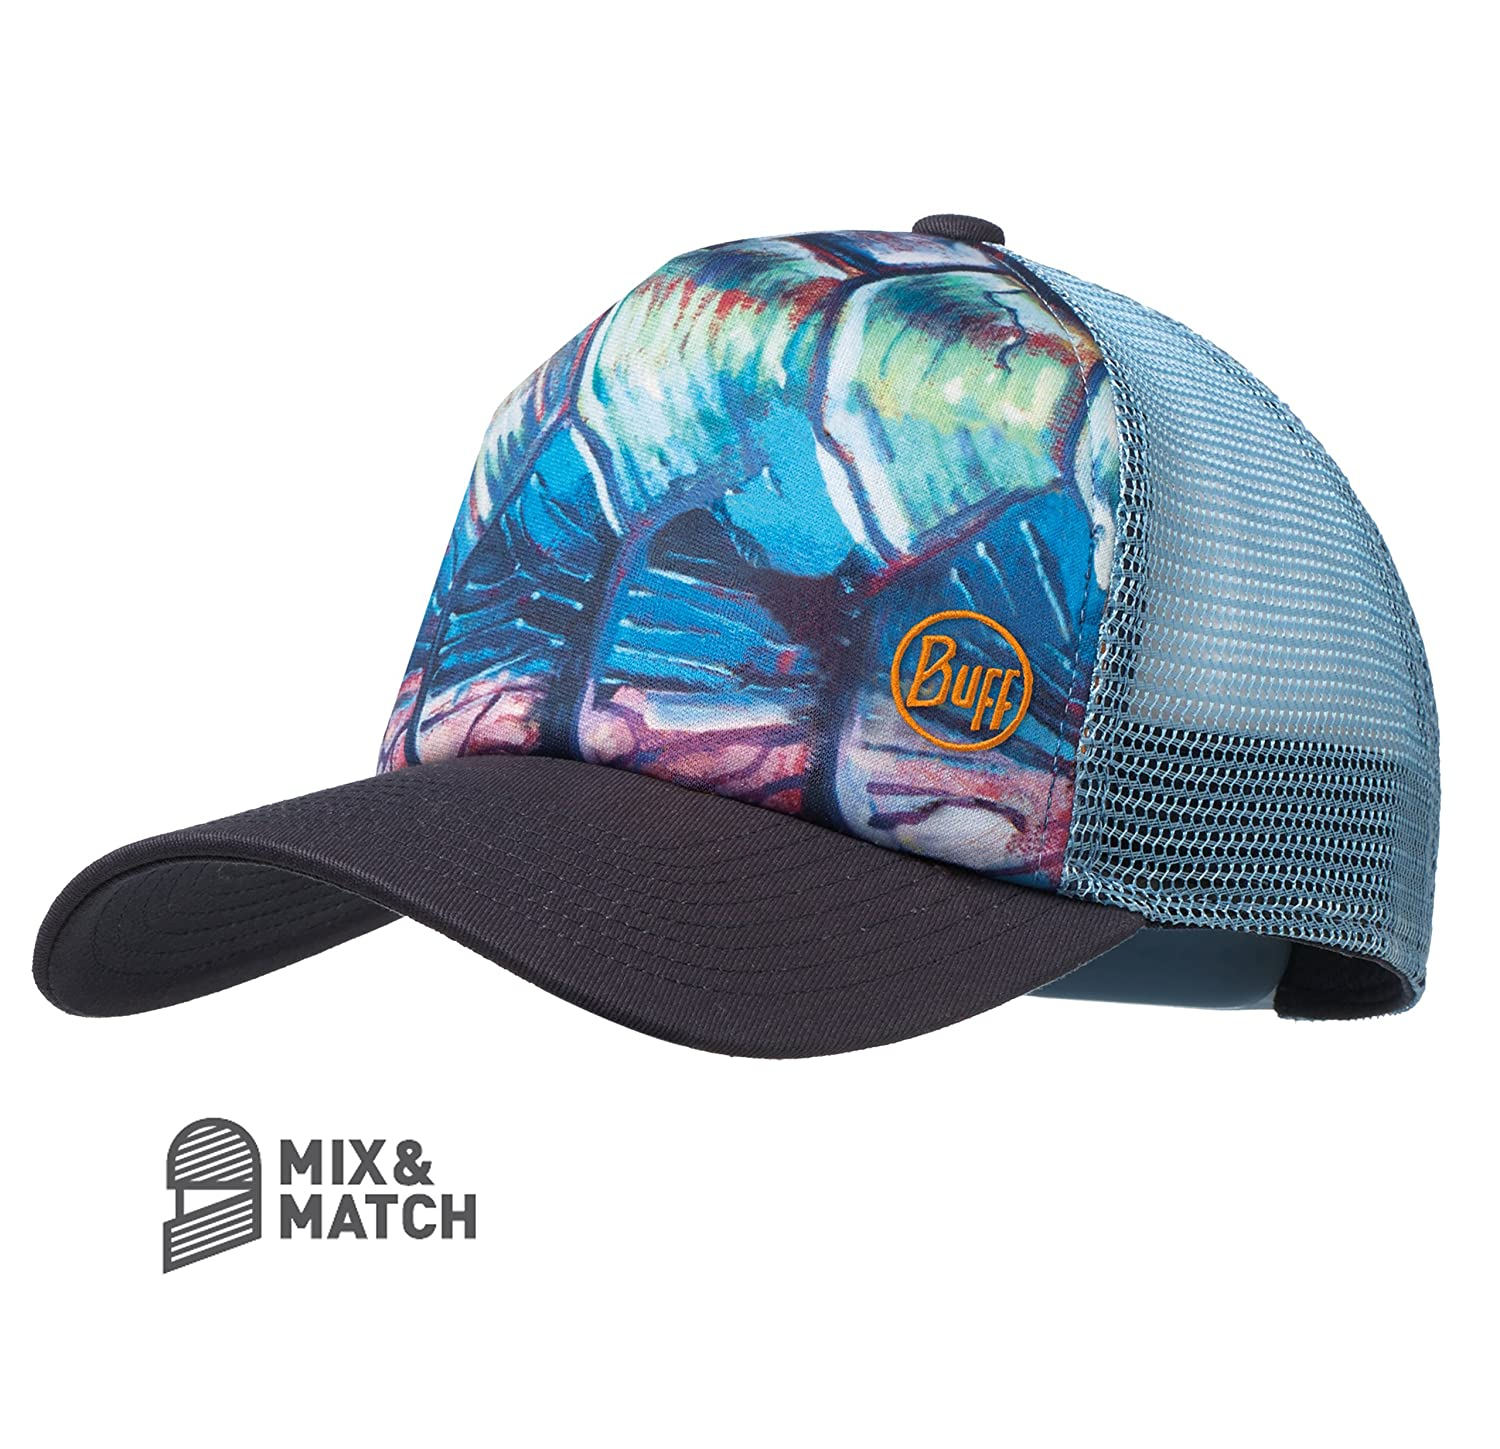 Buff Trucker Cap Original Buff S.A.